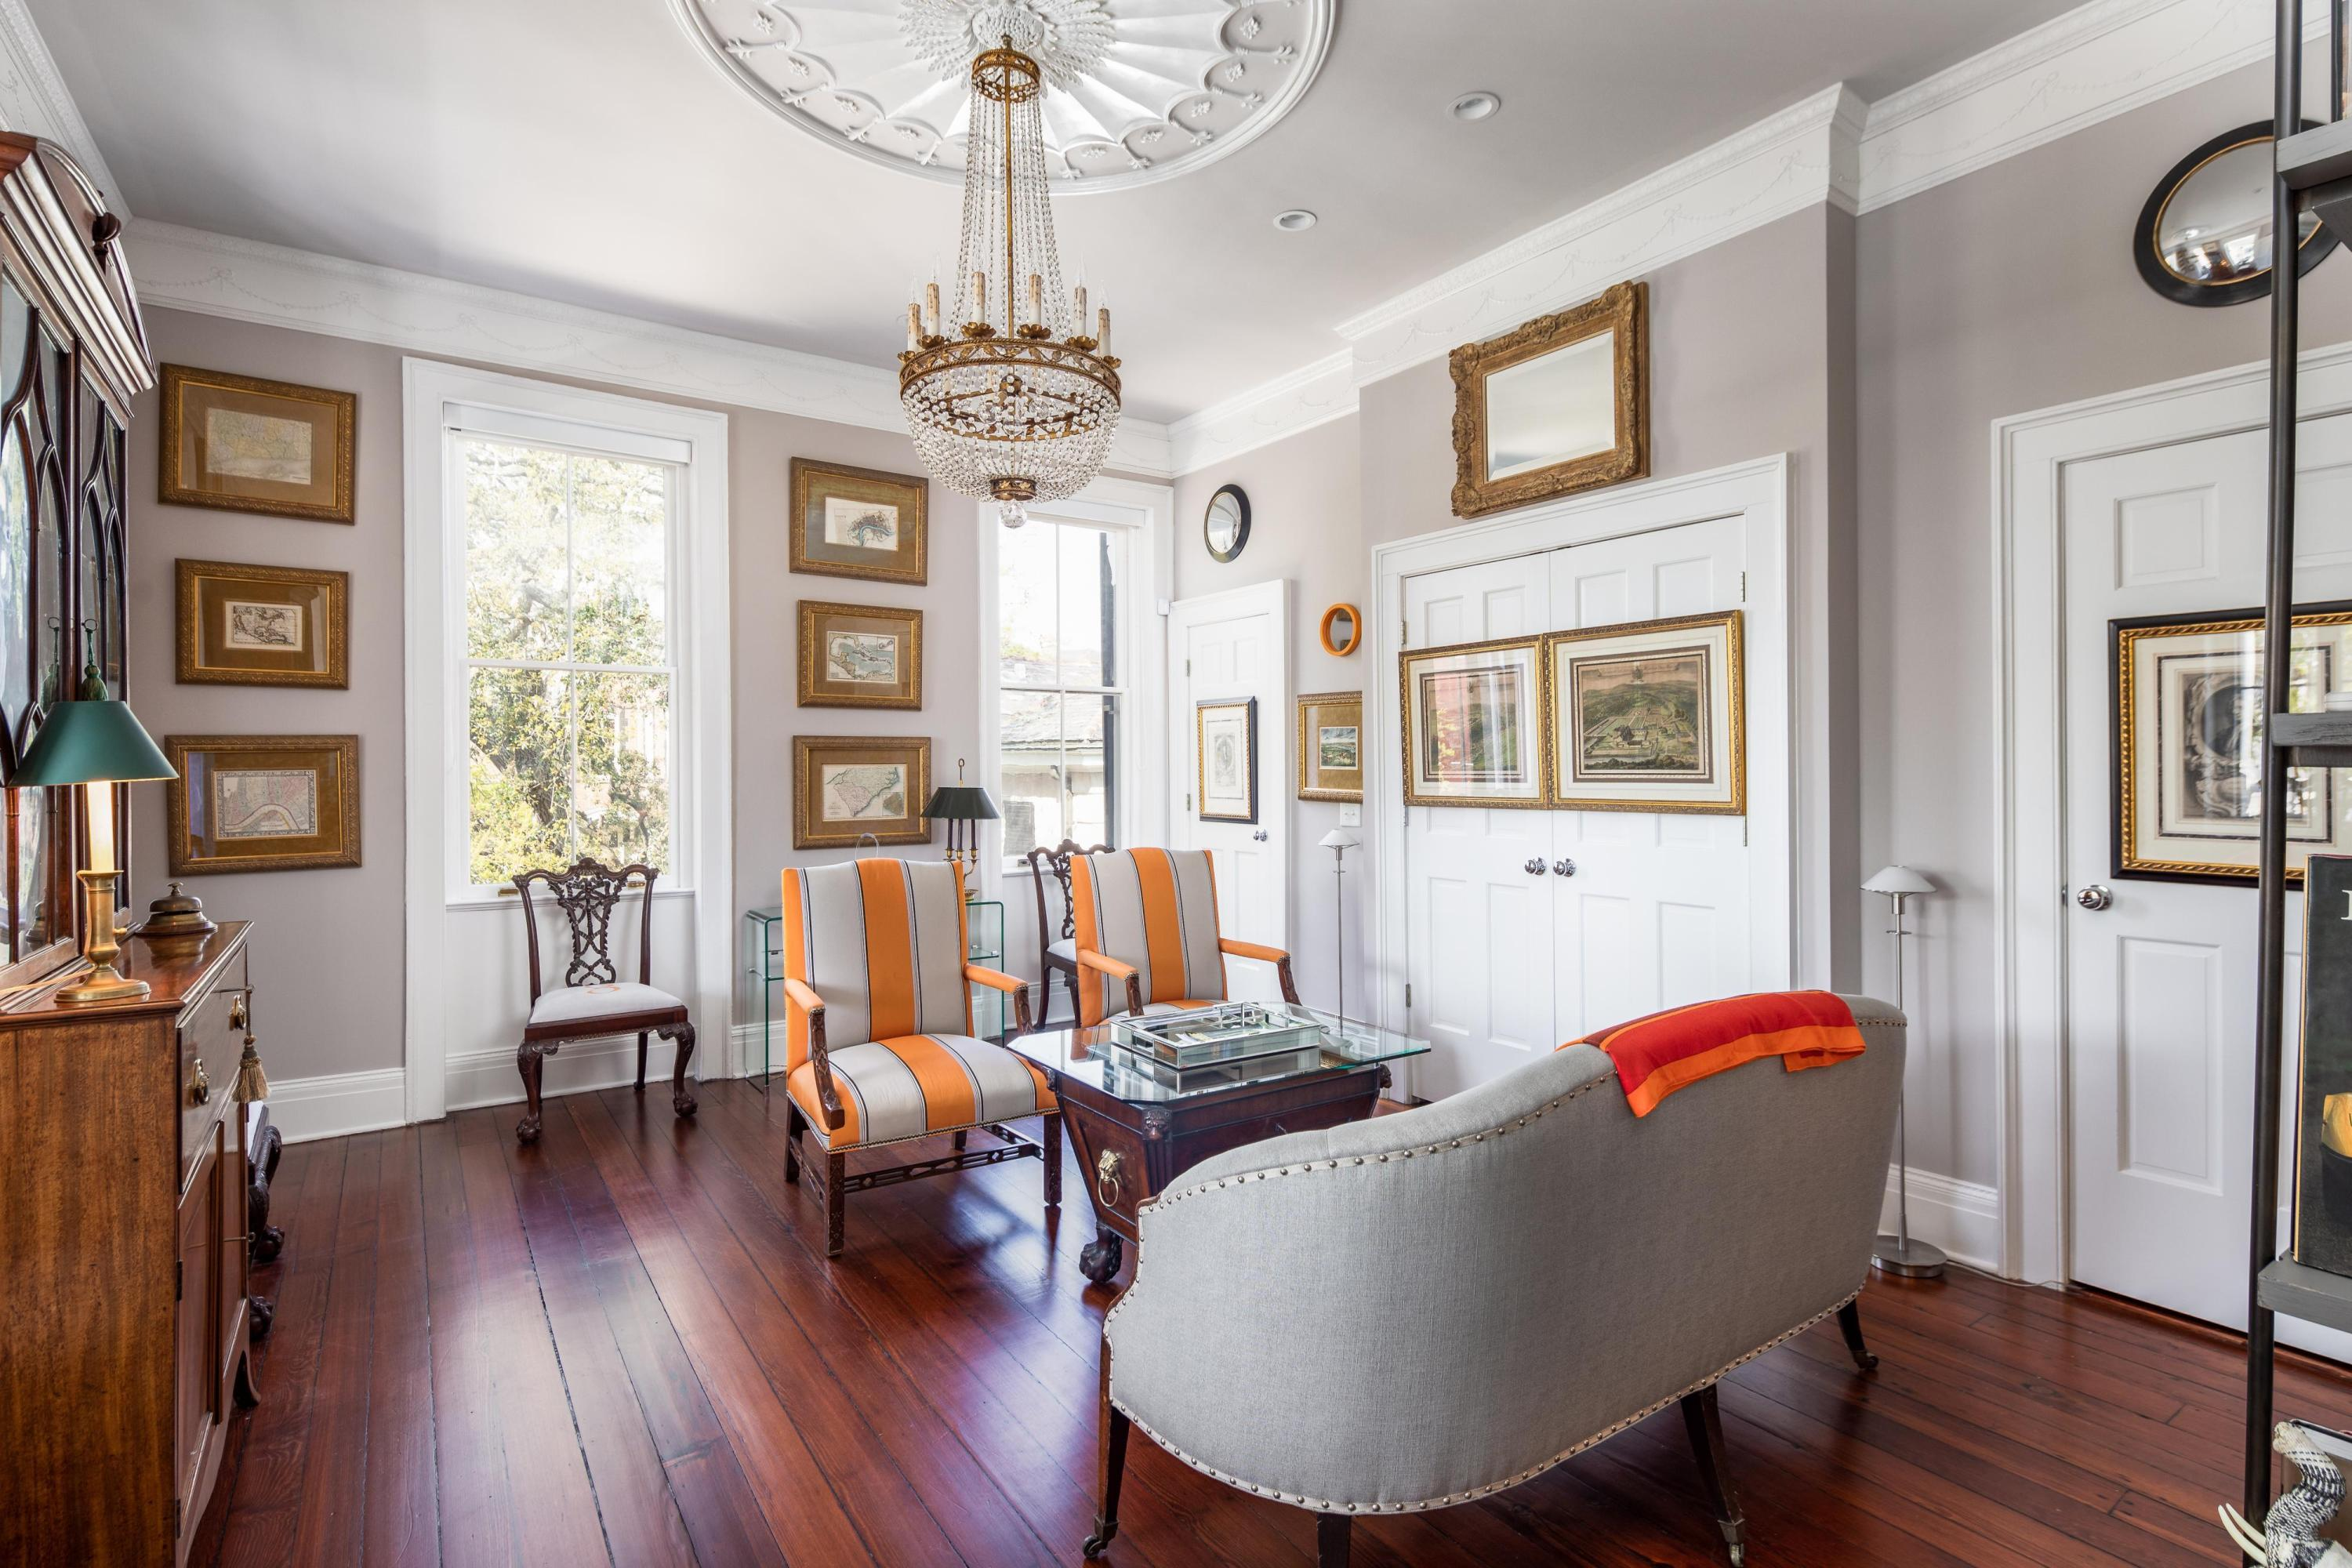 South of Broad Homes For Sale - 18 Church, Charleston, SC - 94